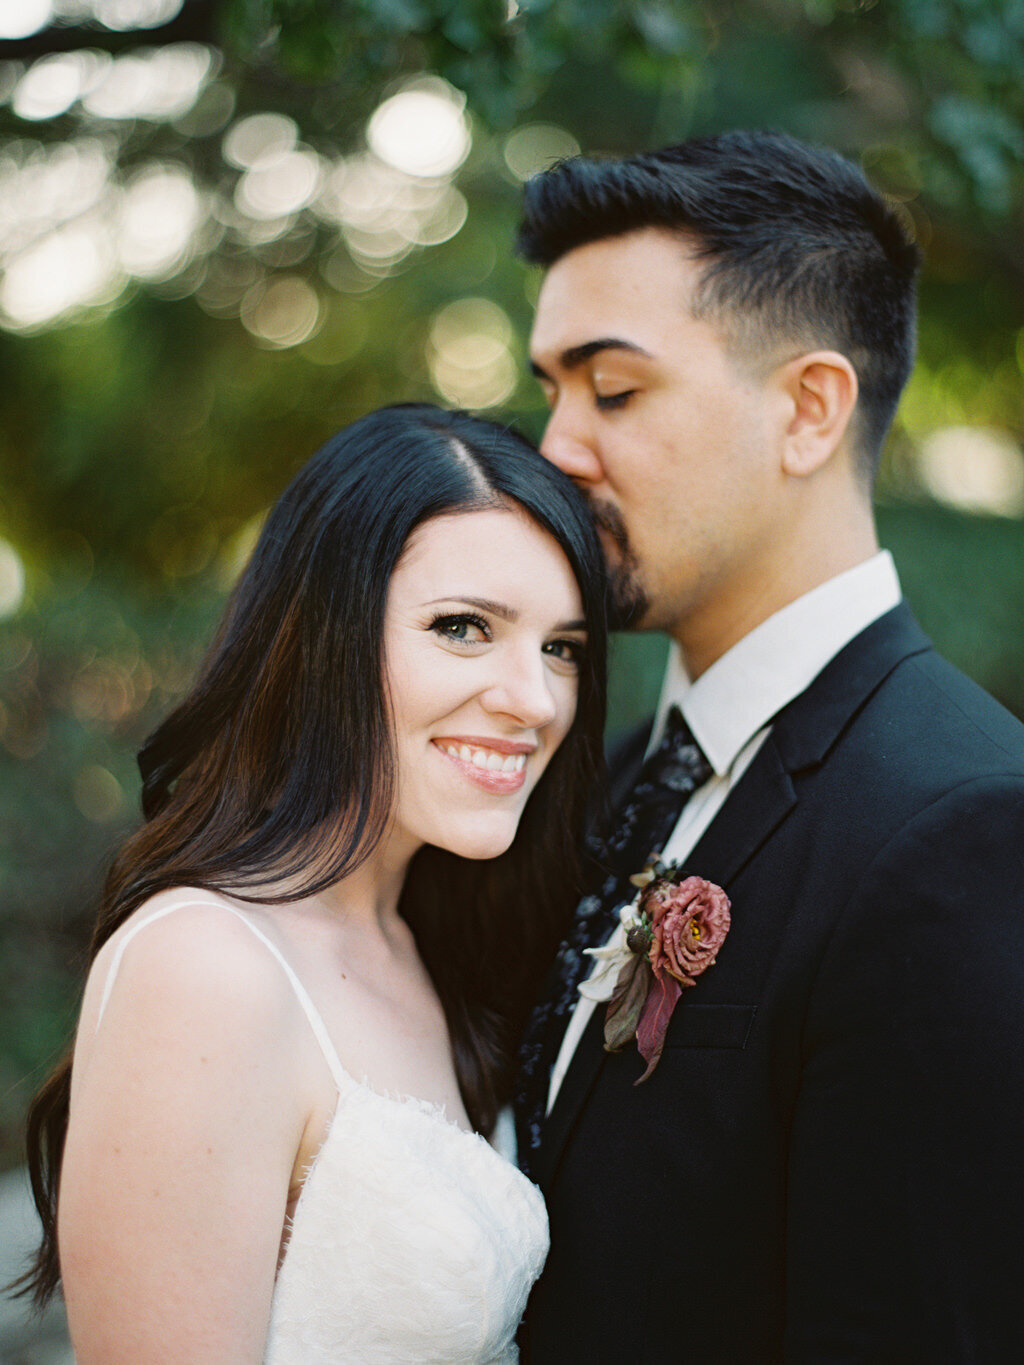 Heritage Museum of Orange County Fall Black and White Wedding Ball Photo Co California Fine Art Film Wedding Elopement Photographer-15